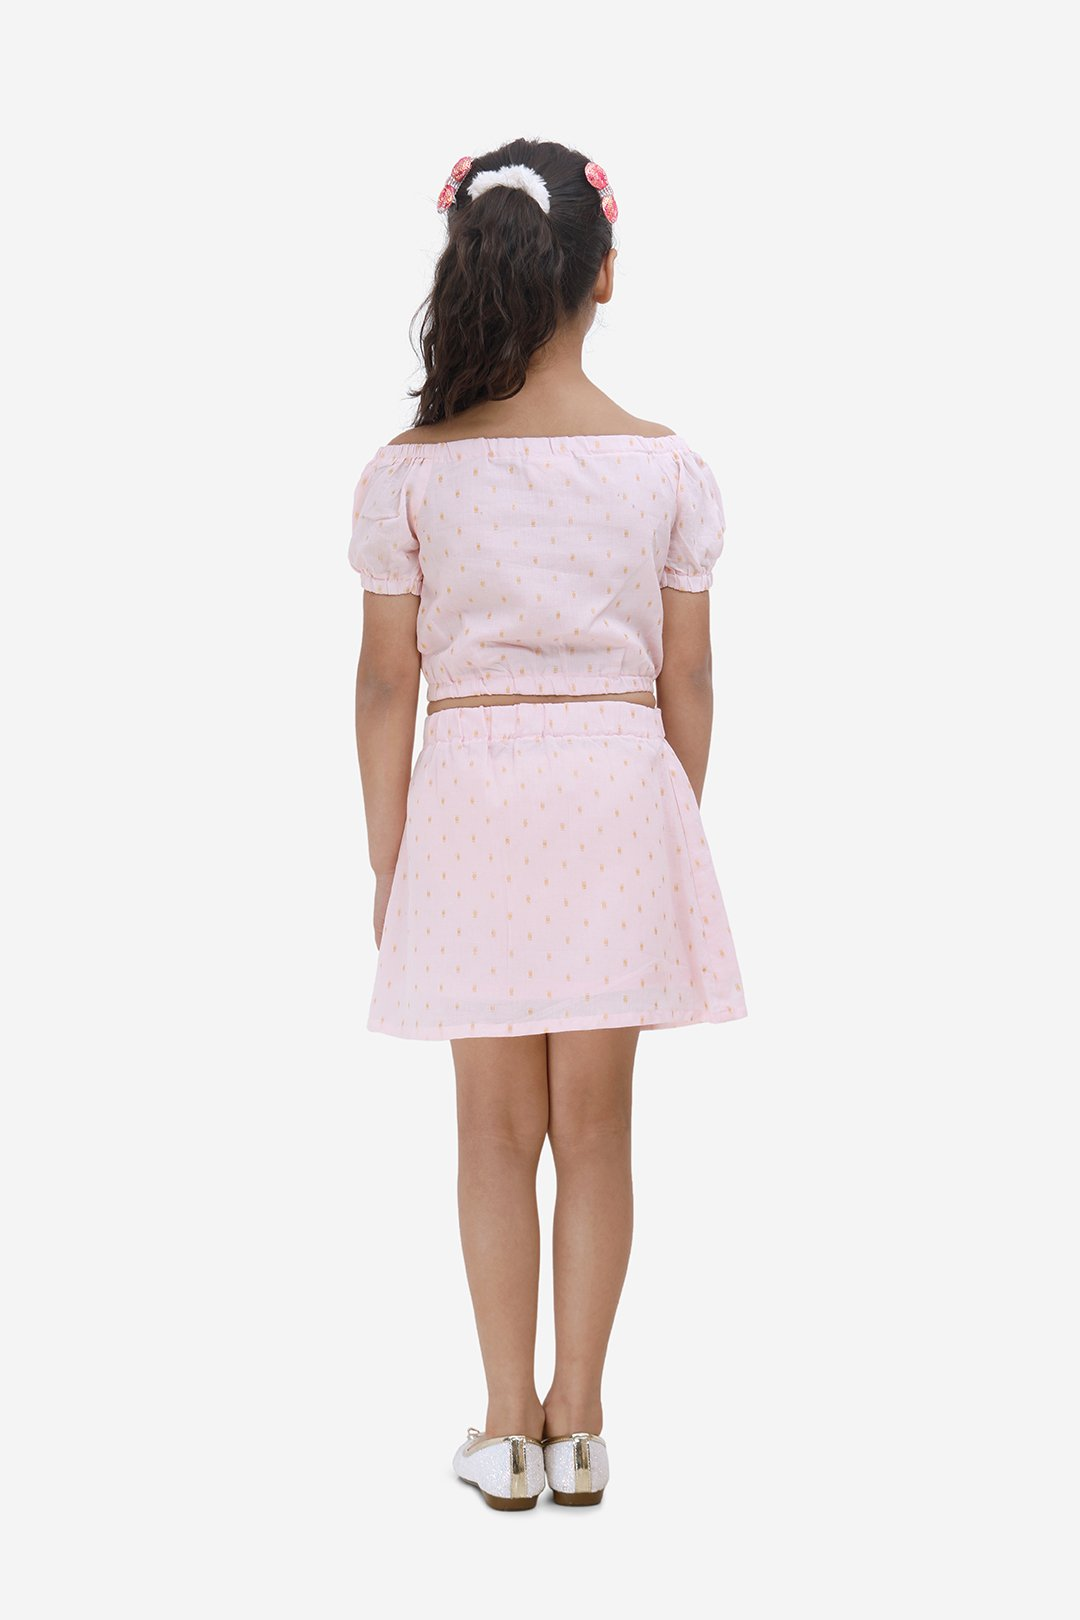 Dot Skirt and Top Set-Pink and Gold